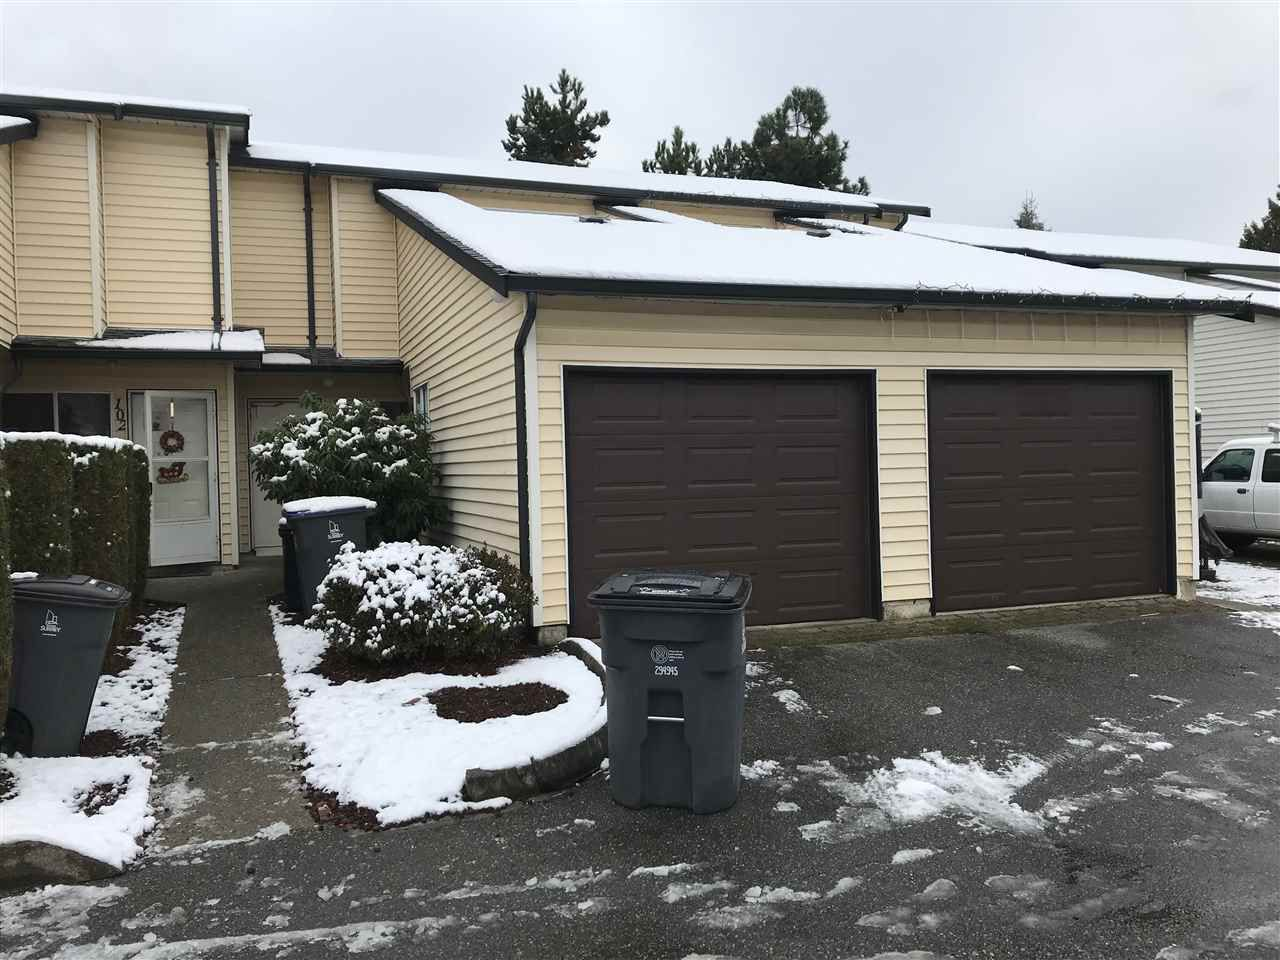 """Main Photo: 103 15519 87A Avenue in Surrey: Fleetwood Tynehead Townhouse for sale in """"Evergreen Estates"""" : MLS®# R2229376"""